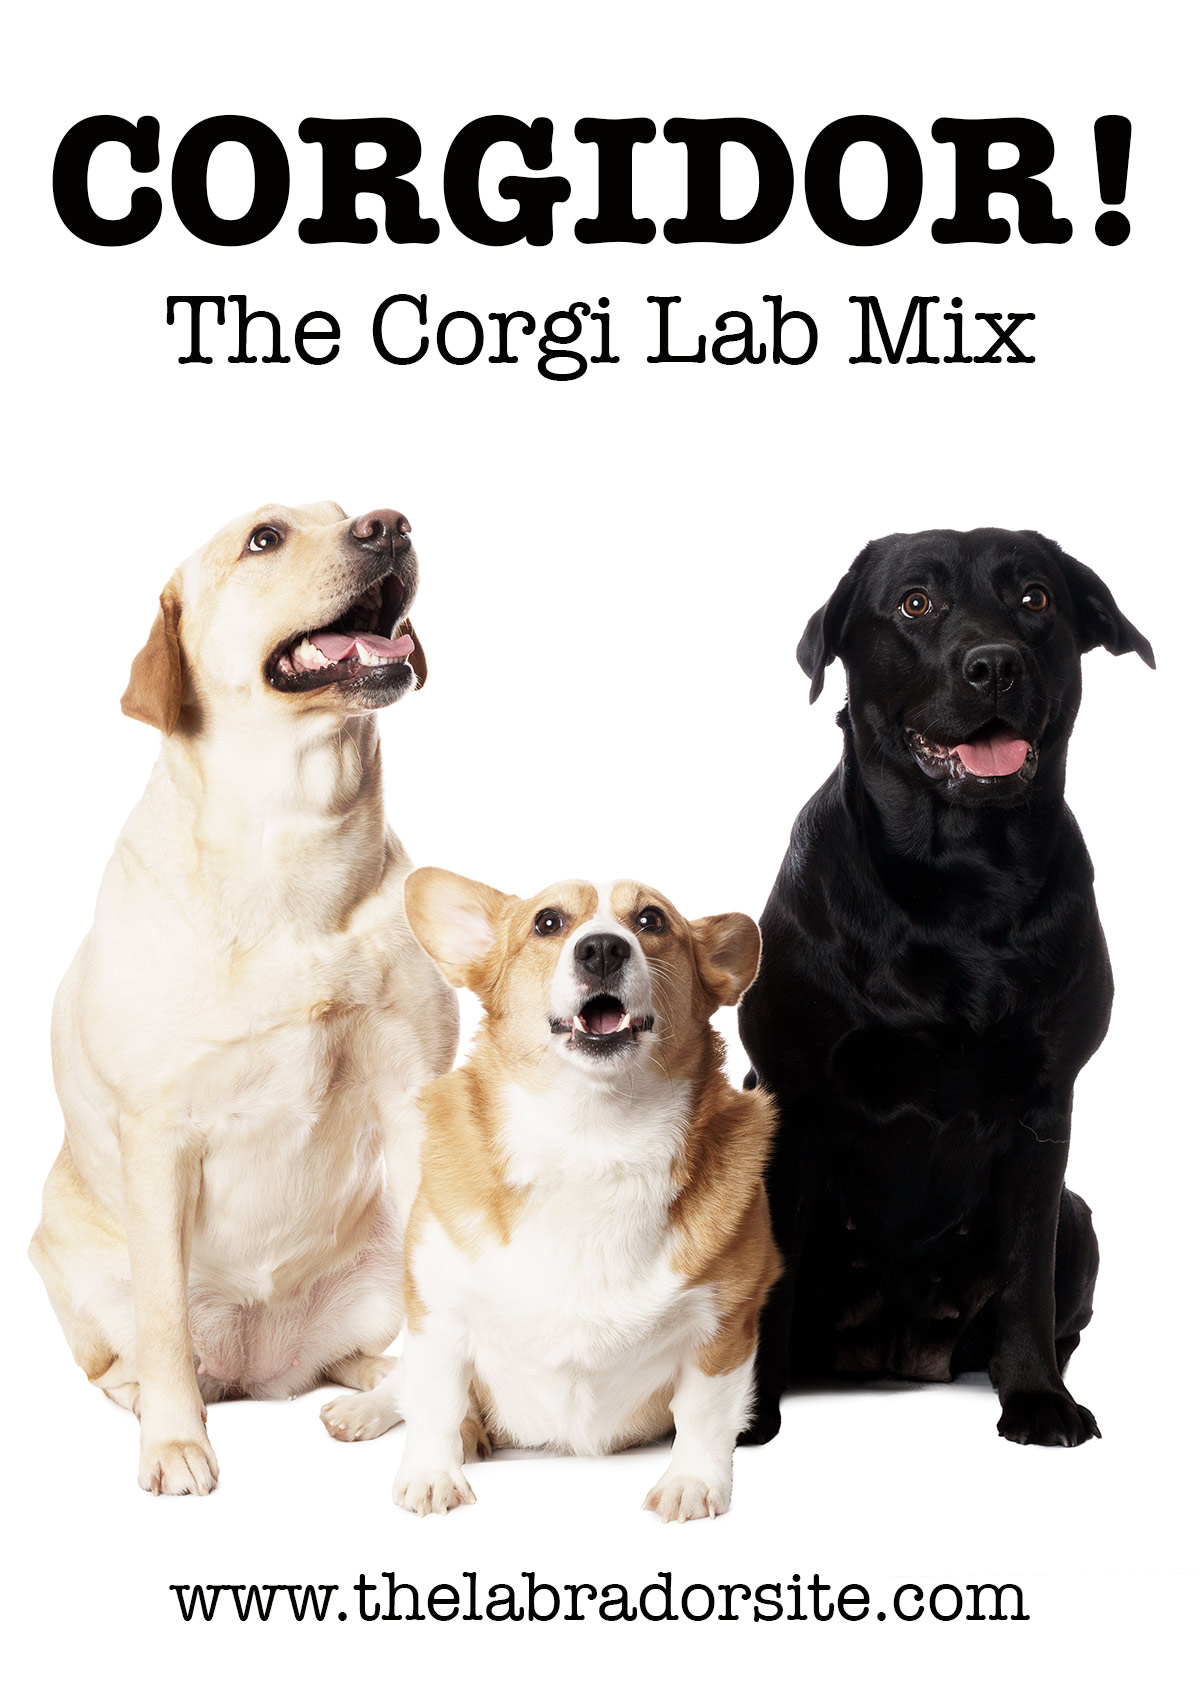 Corgi Lab Mix - Corgidor